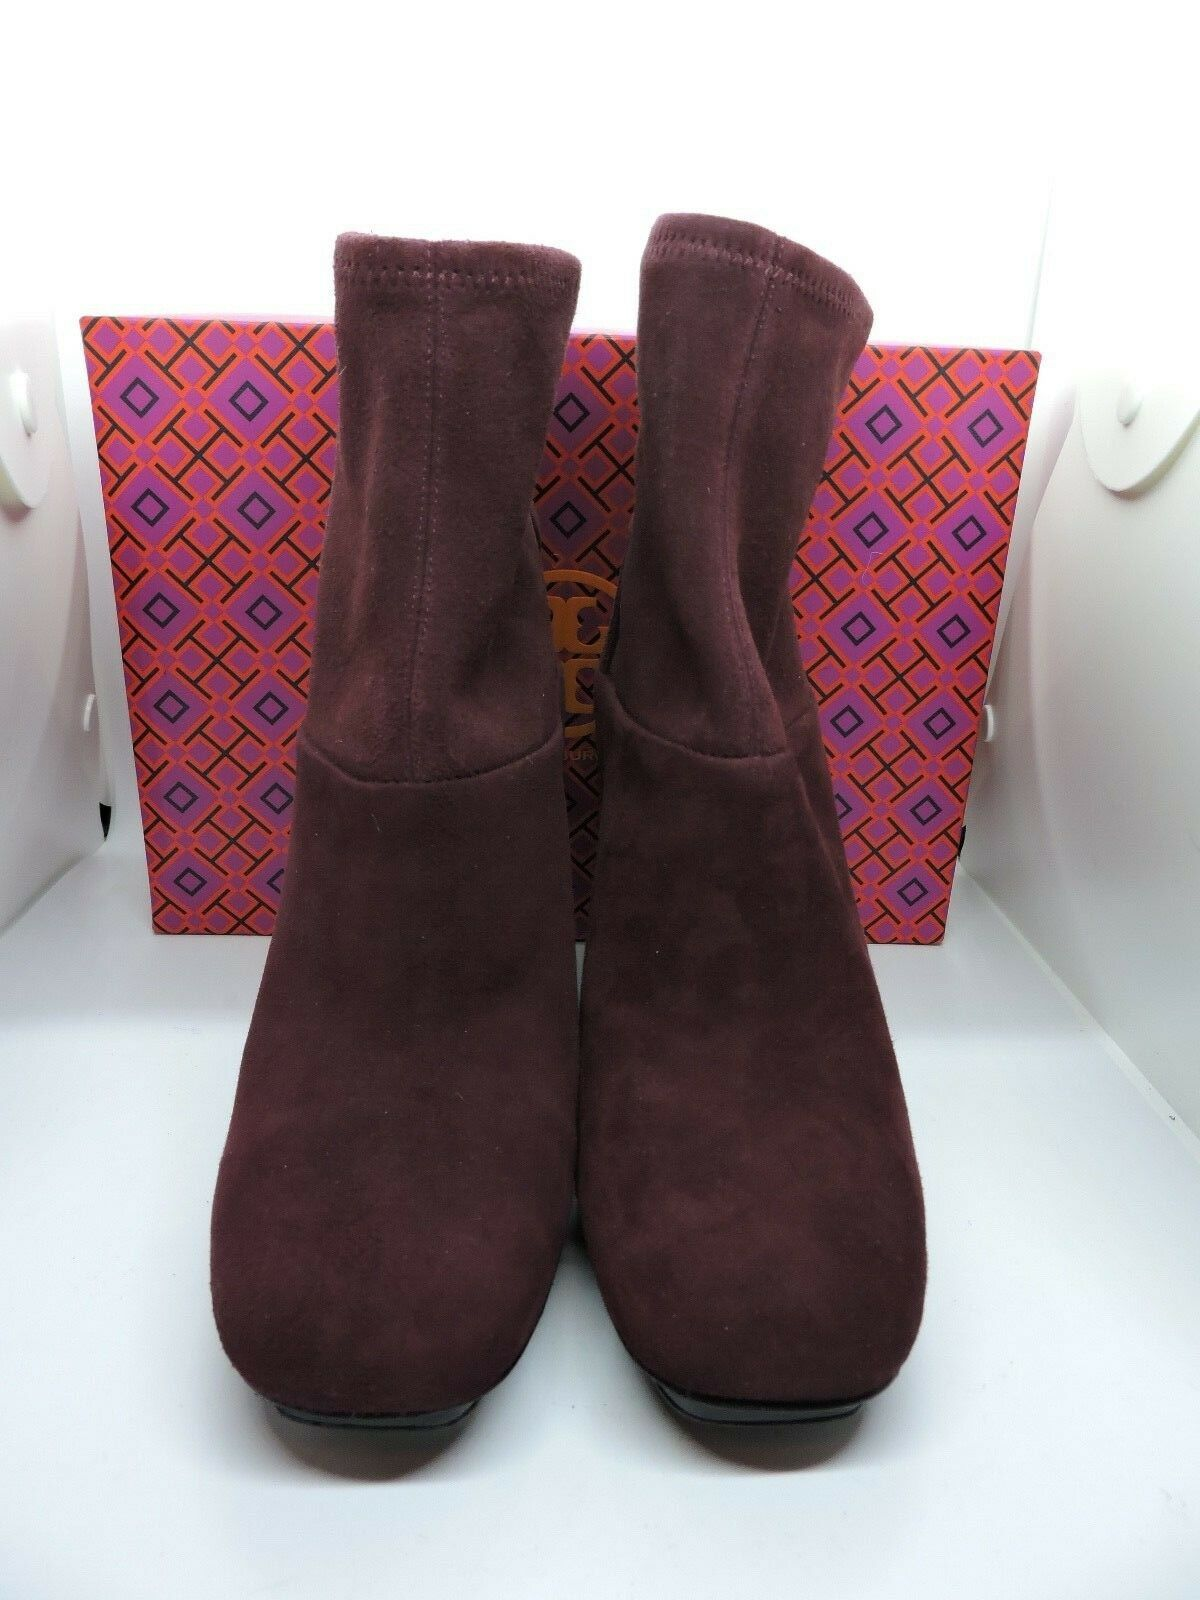 NIB  450 TORY BURCH SIDNEY 105MM PORT BOOTIE SUEDE SHORT BOOT 8